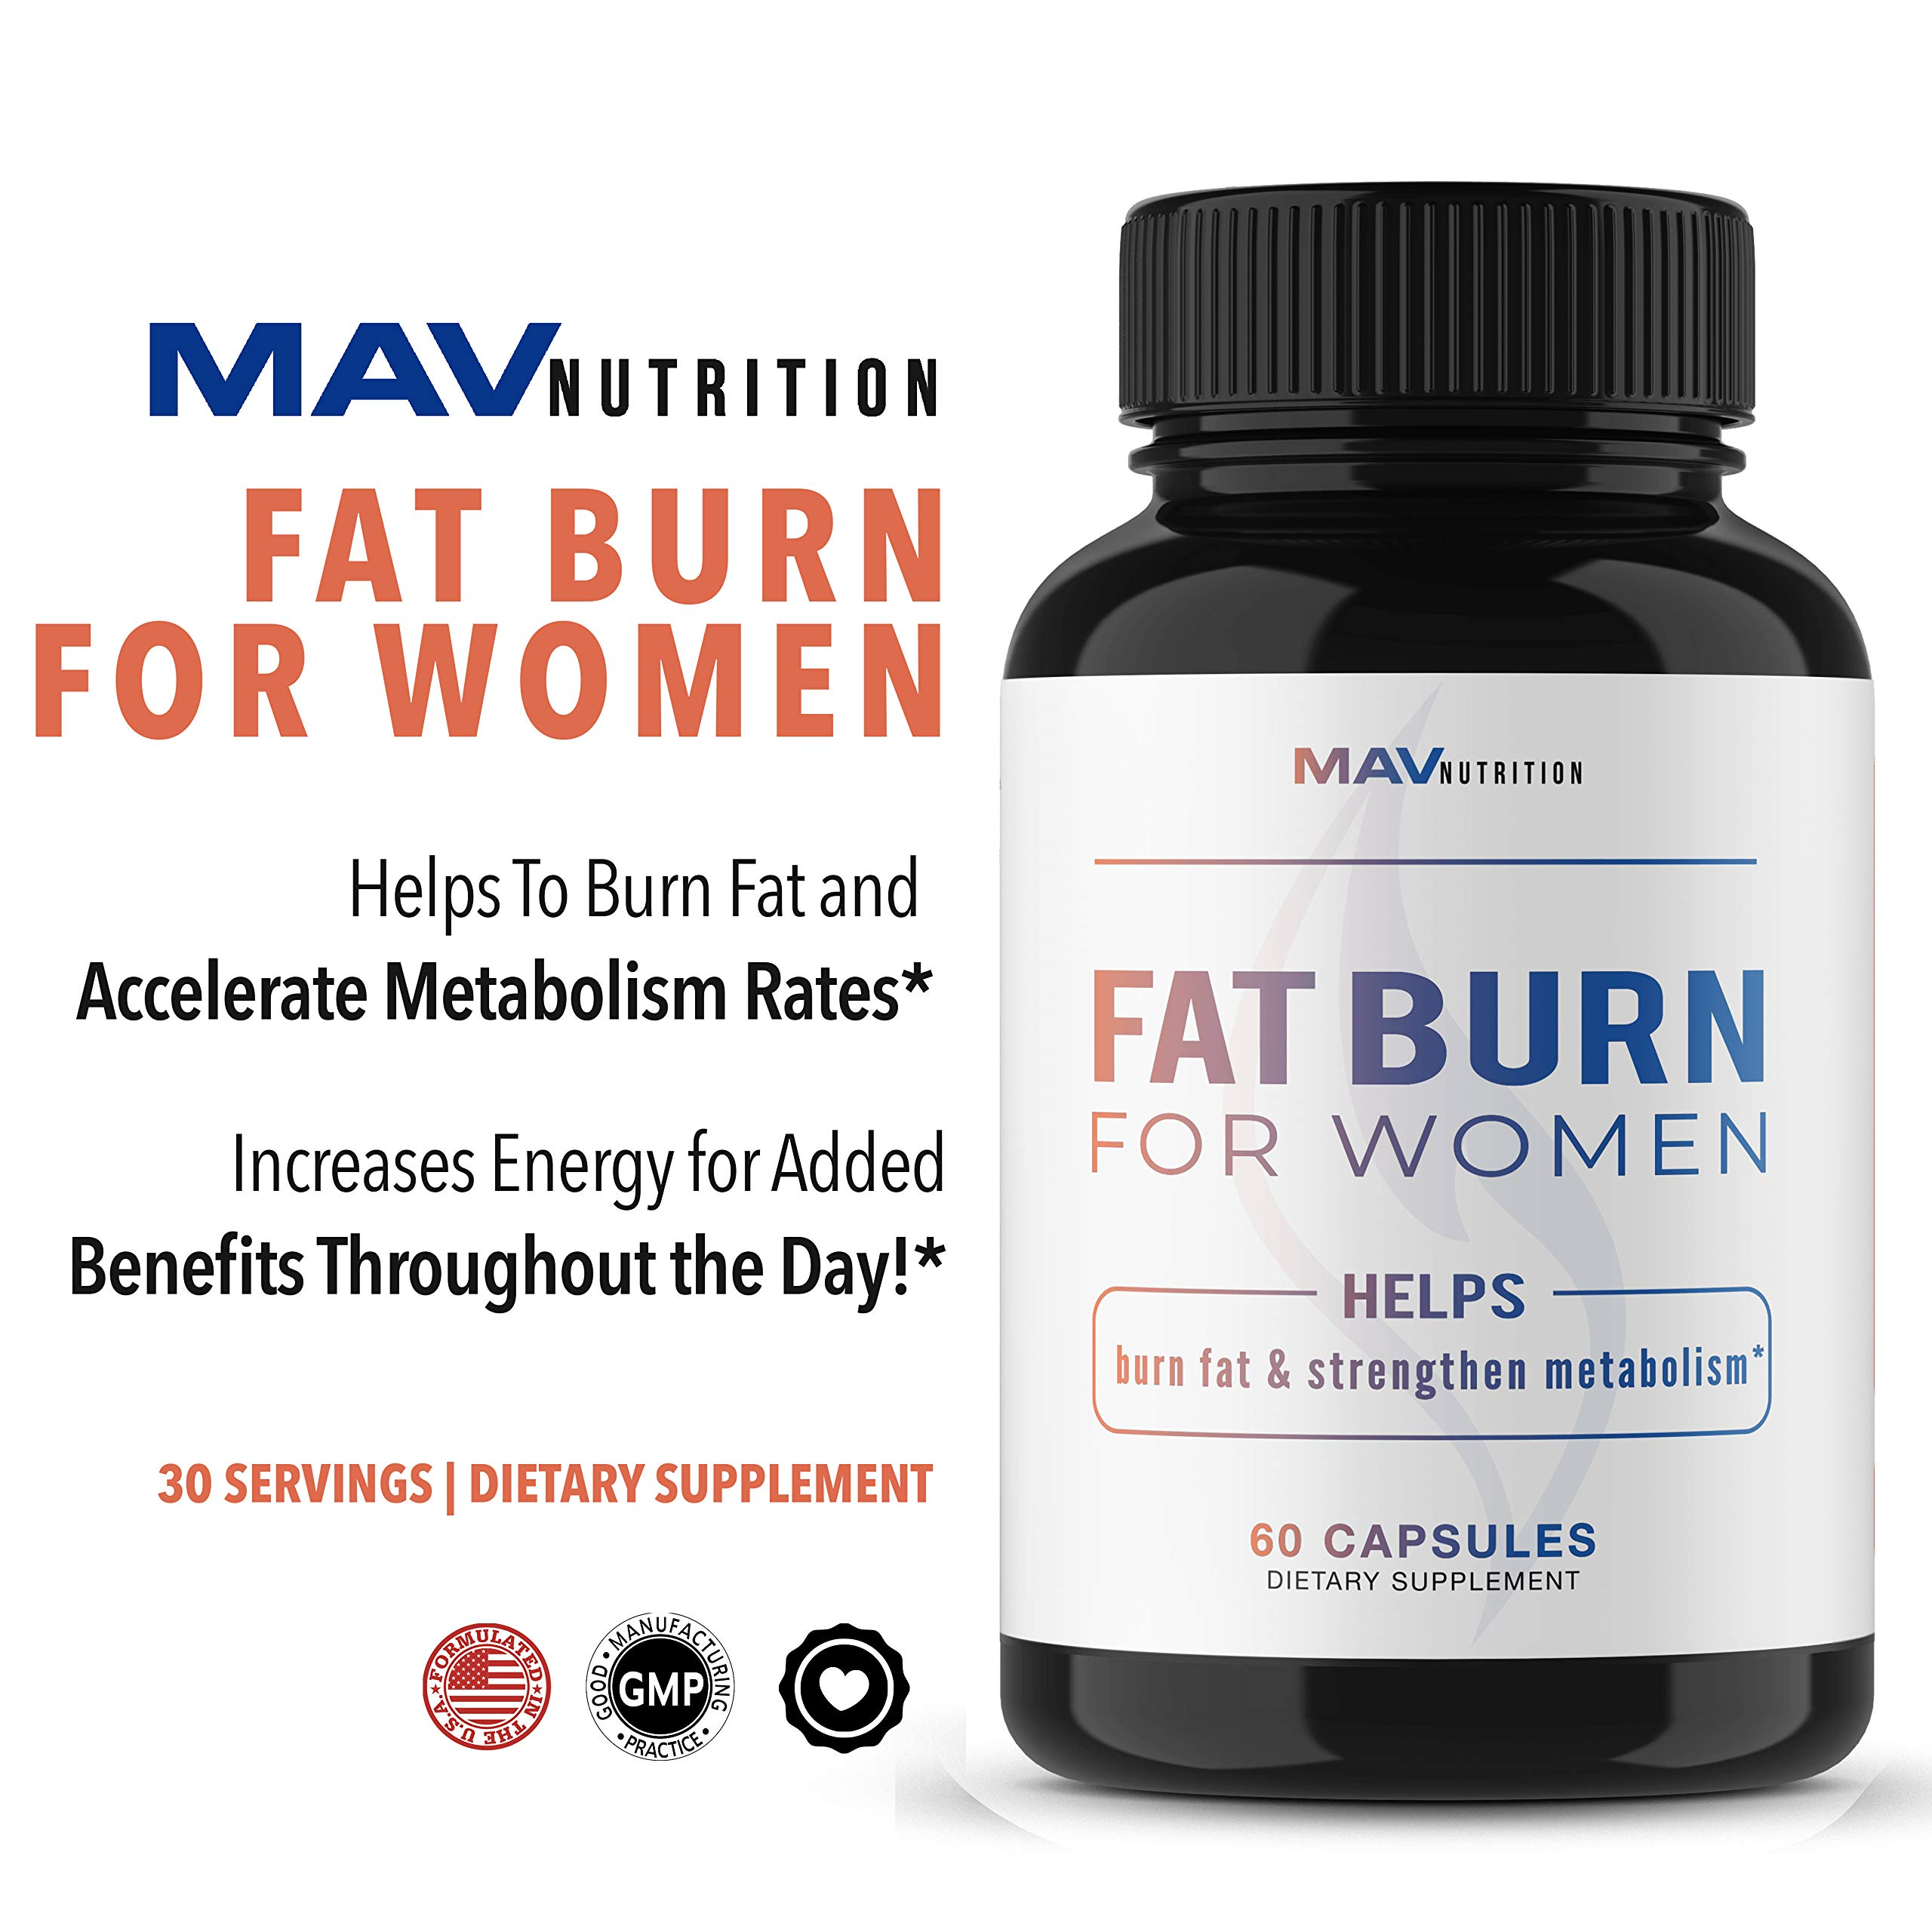 Womens Fat Burner Weight Loss Pills Designed for Increasing Healthy Metabolism, Supporting Energy Levels, Fat Loss, and Increasing Tone; Non-GMO, Gelatin-Free; 60 Vegetarian Capsules for Women by MAV Nutriton (Image #5)